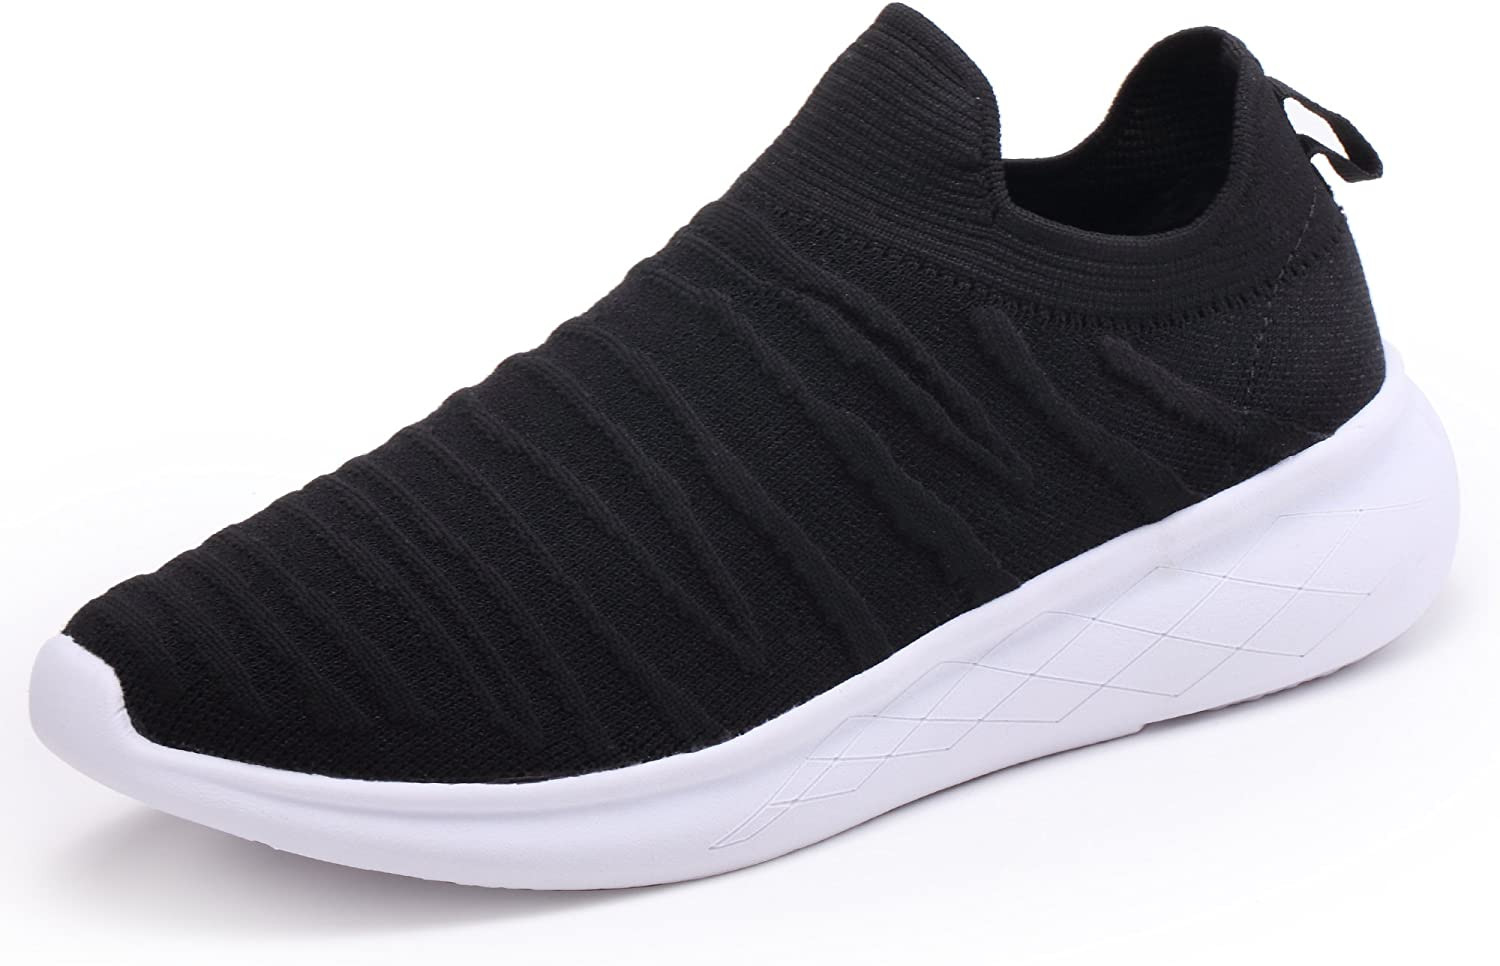 J.LMH Women's Sneakers Slip-on Walking Athletic Tennis shoes